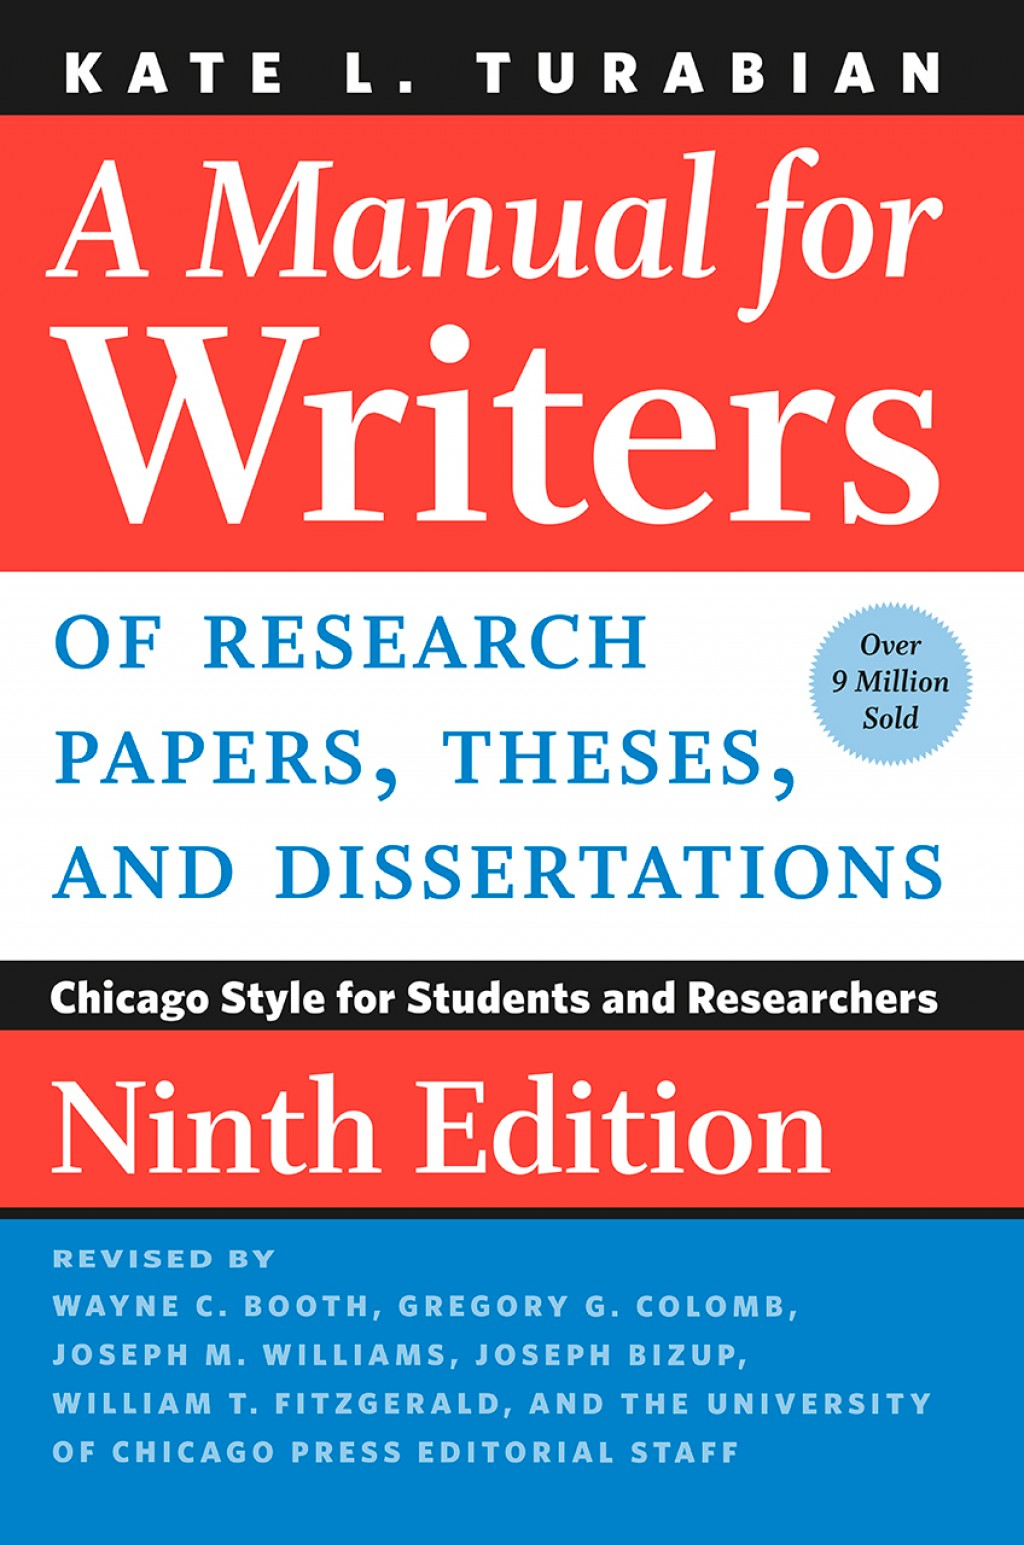 001 Manual For Writers Of Researchs Theses And Dissertations Sensational A Research Papers Eighth Edition Pdf 9th 8th Large